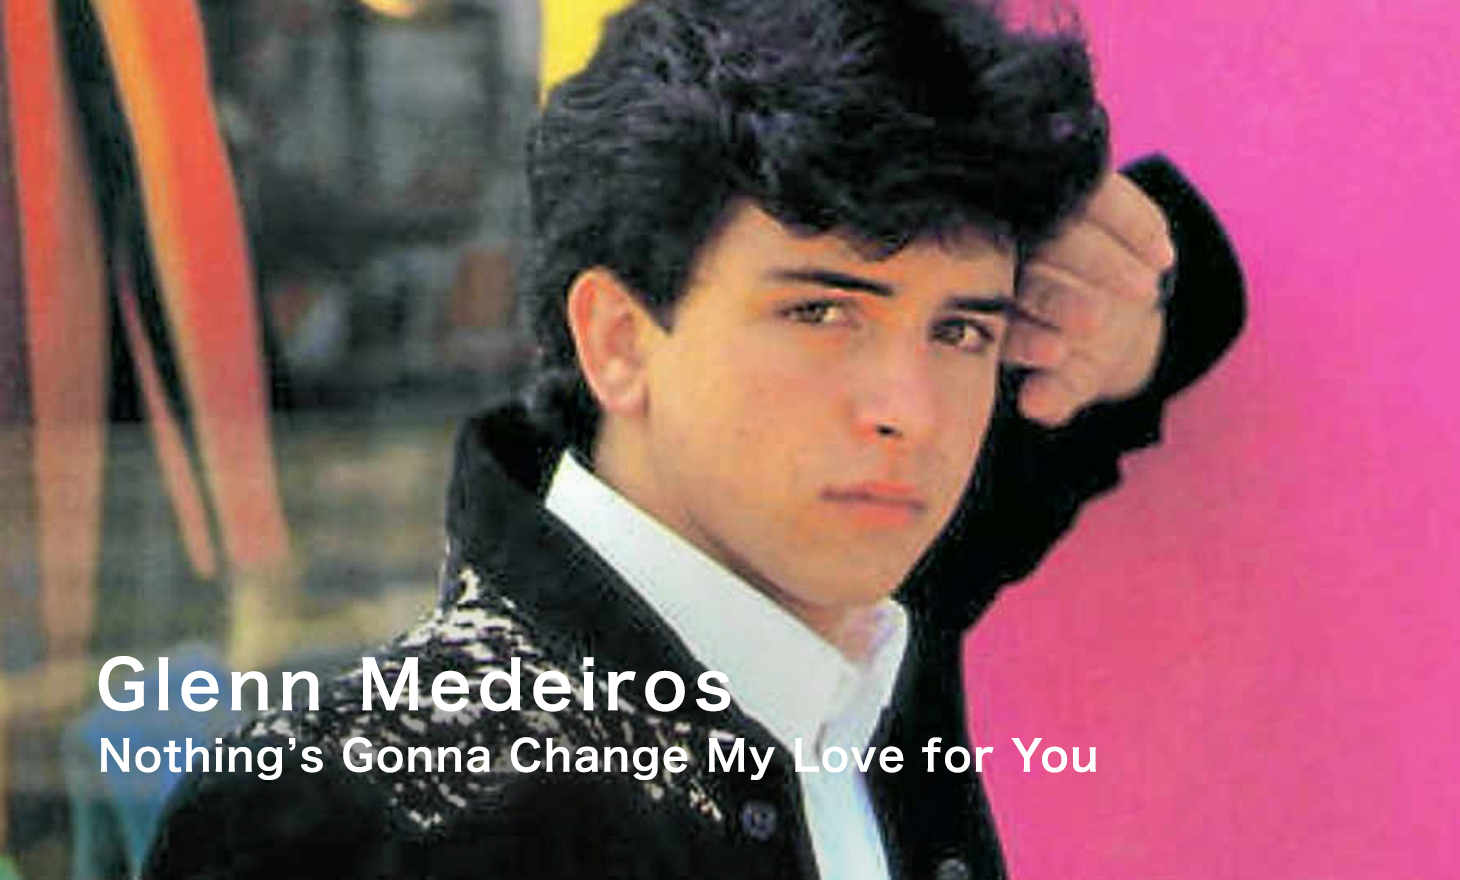 Glenn Medeiros : Nothing's Gonna Change My Love for You